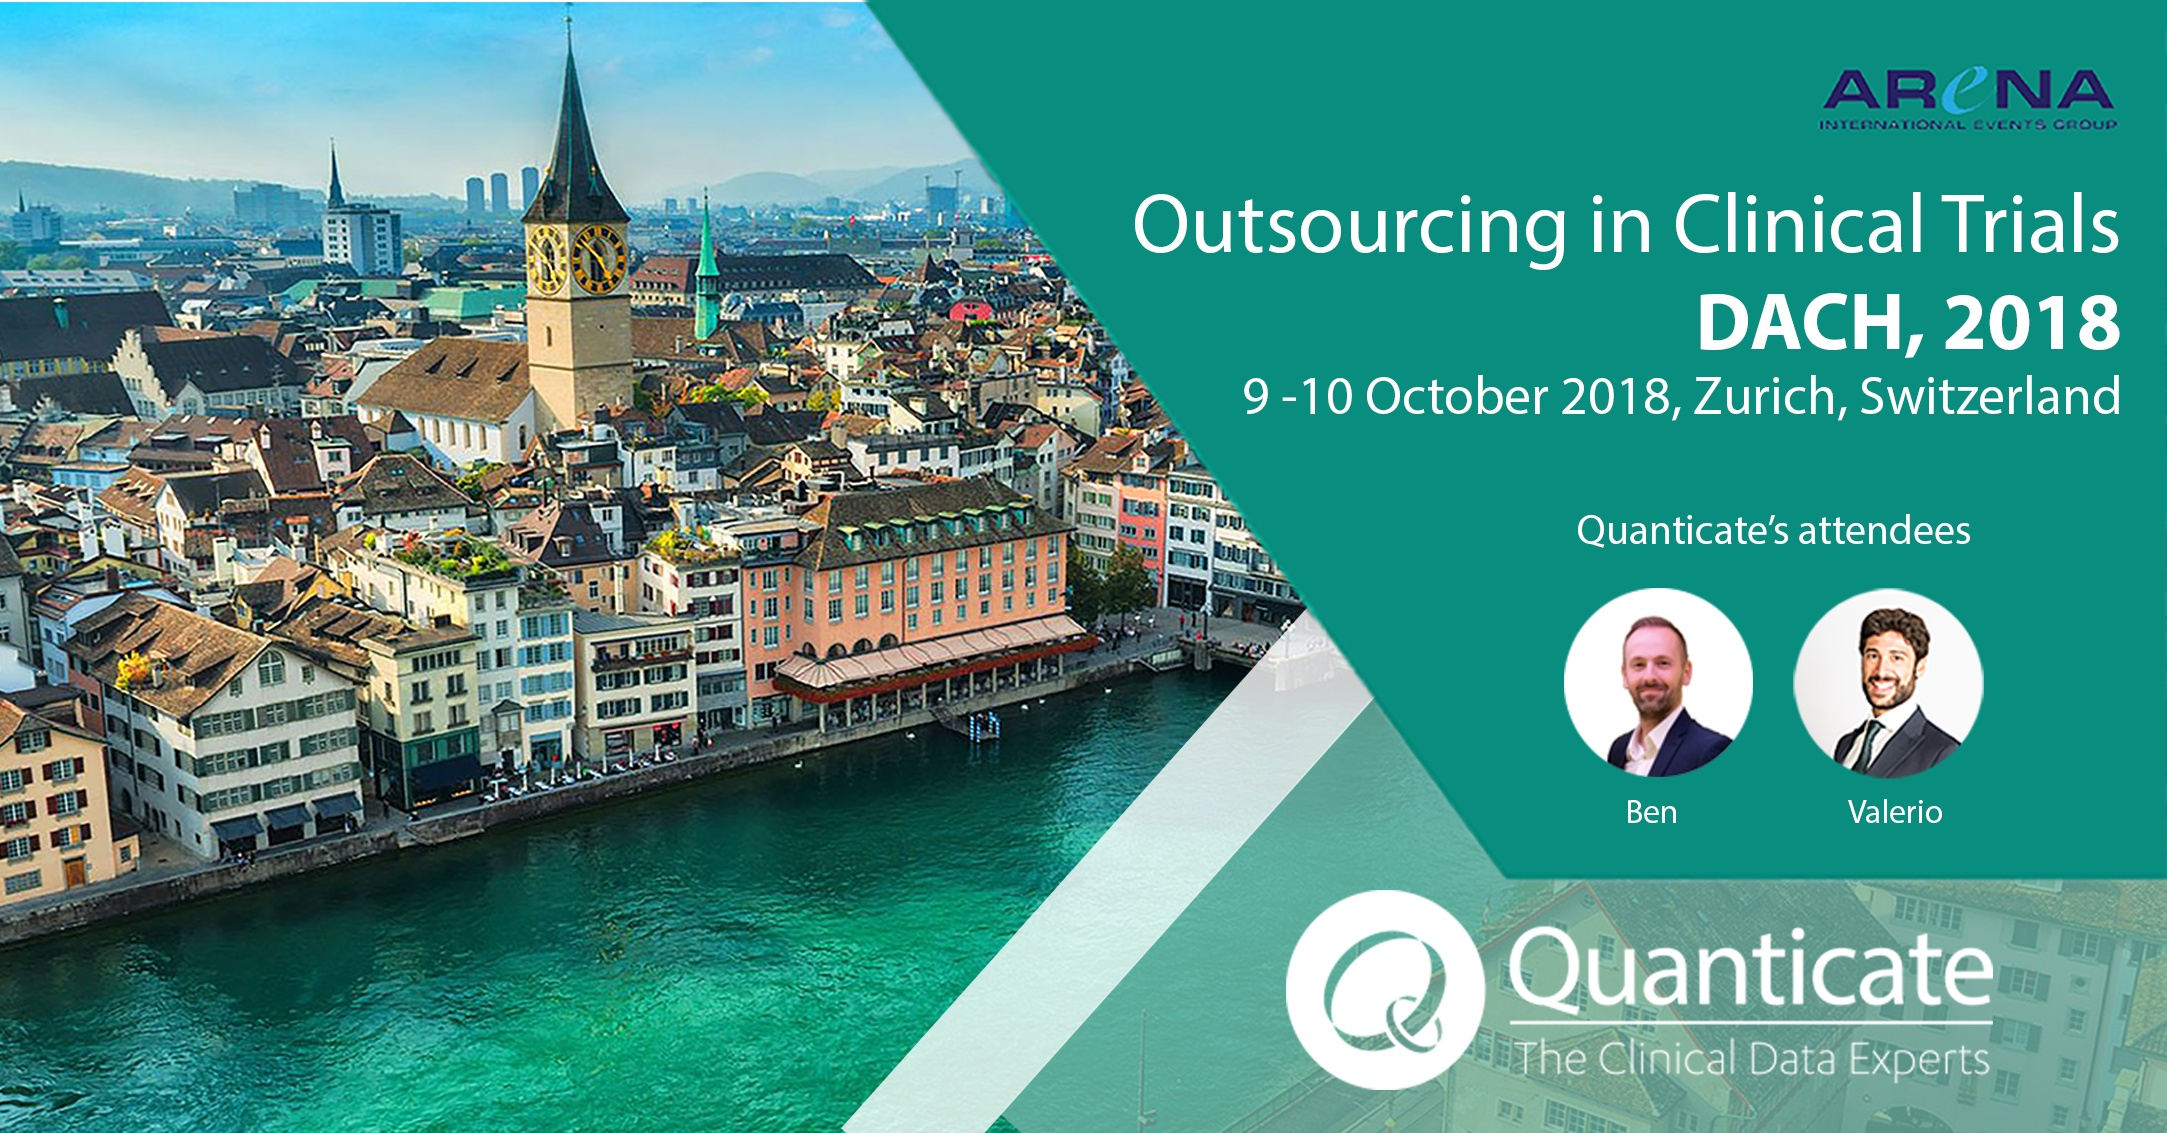 Quanticate Exhibits at the Outsourcing in Clinical Trials DACH 2018 - Featured Image